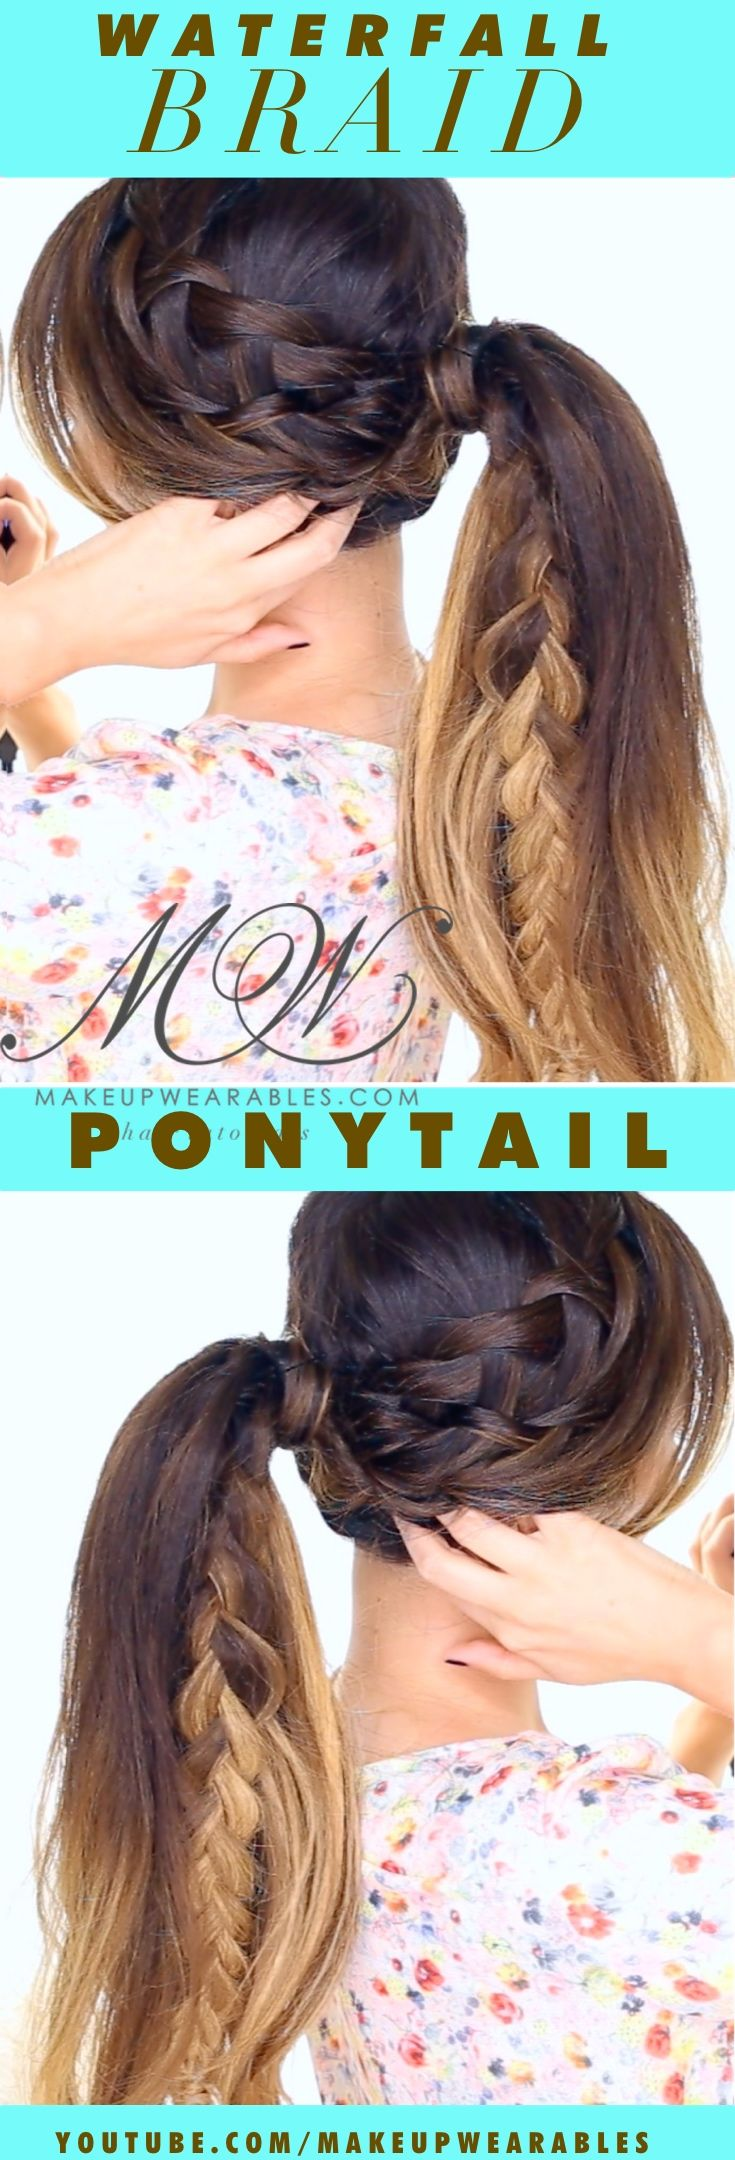 Double Waterfall Braid Ponytail Tutorial |  Click to watch the how-to video | Cute braided hairstyles